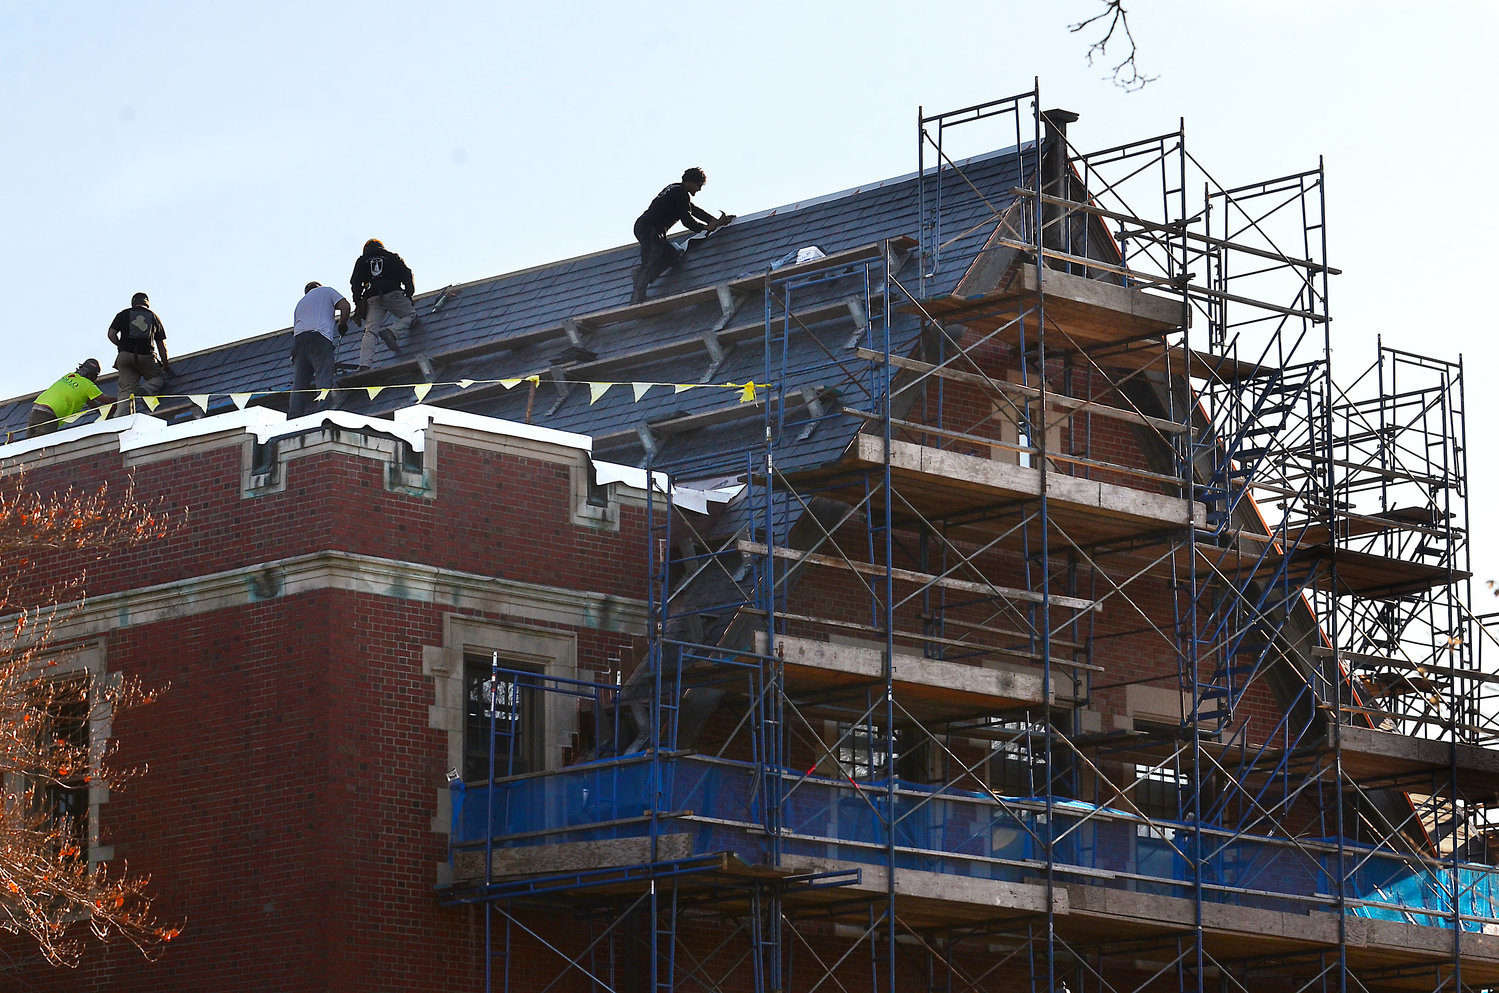 Workers from Apollo Roofing and Sheet Metal replace the roof atop the Peck Center building on Wednesday, Jan. 15. The roof replacement is part of a multi-phased project which also includes improvements to the Adult Enrichment Center and Tap-In.